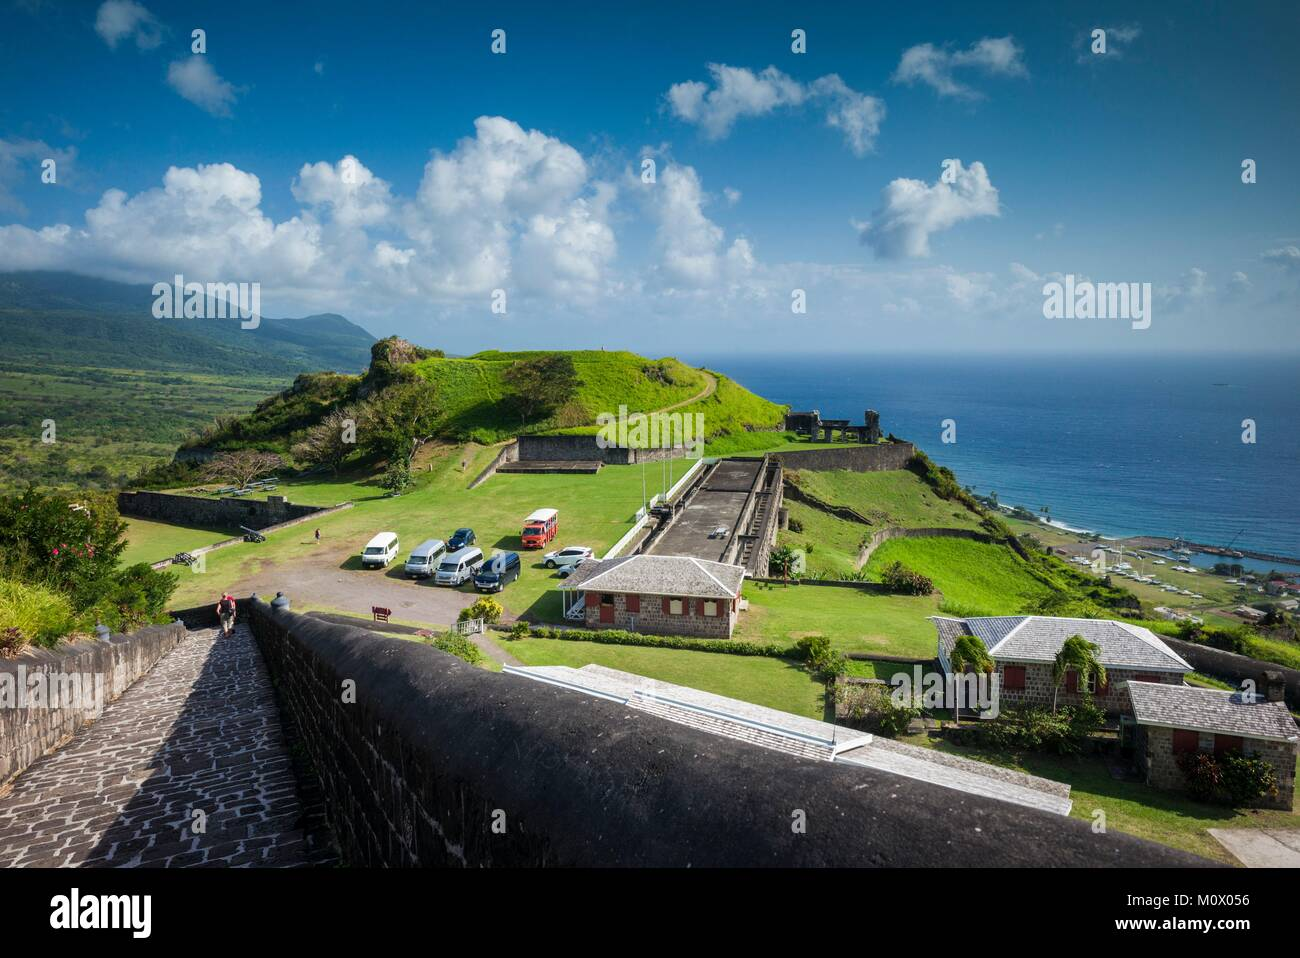 St. Kitts and Nevis,St. Kitts,Brimstone Hill,Brimstone Hill Fortress - Stock Image